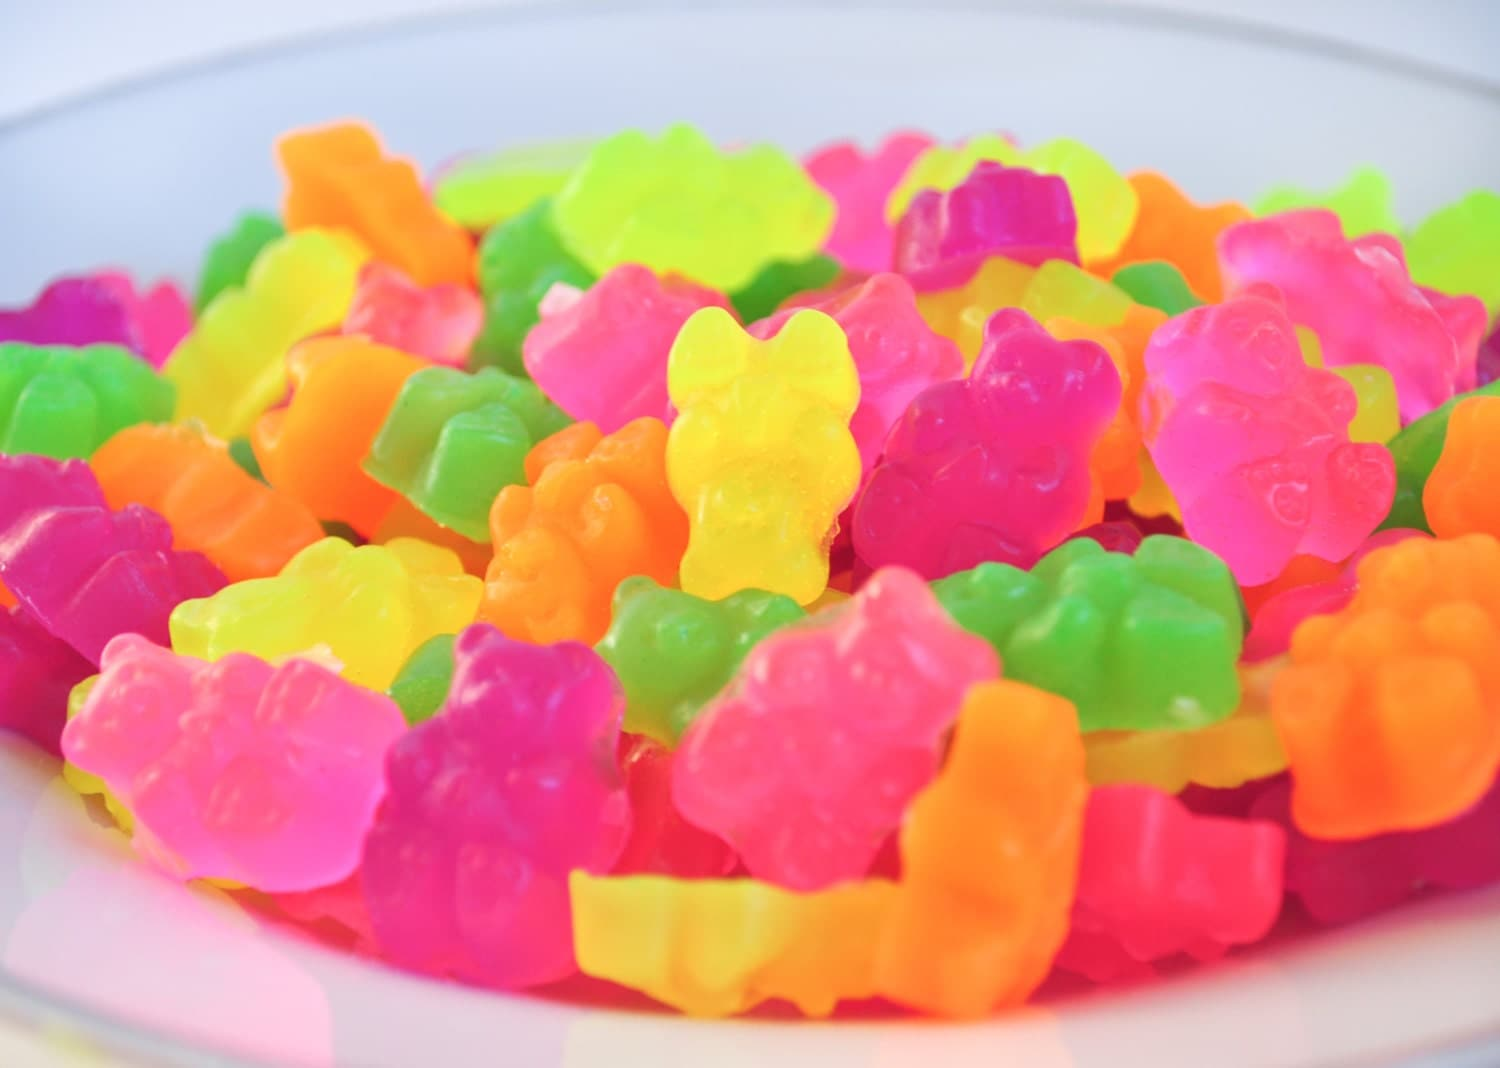 neon gummi bear soaps 3 oz rainbow colors green apple. Black Bedroom Furniture Sets. Home Design Ideas